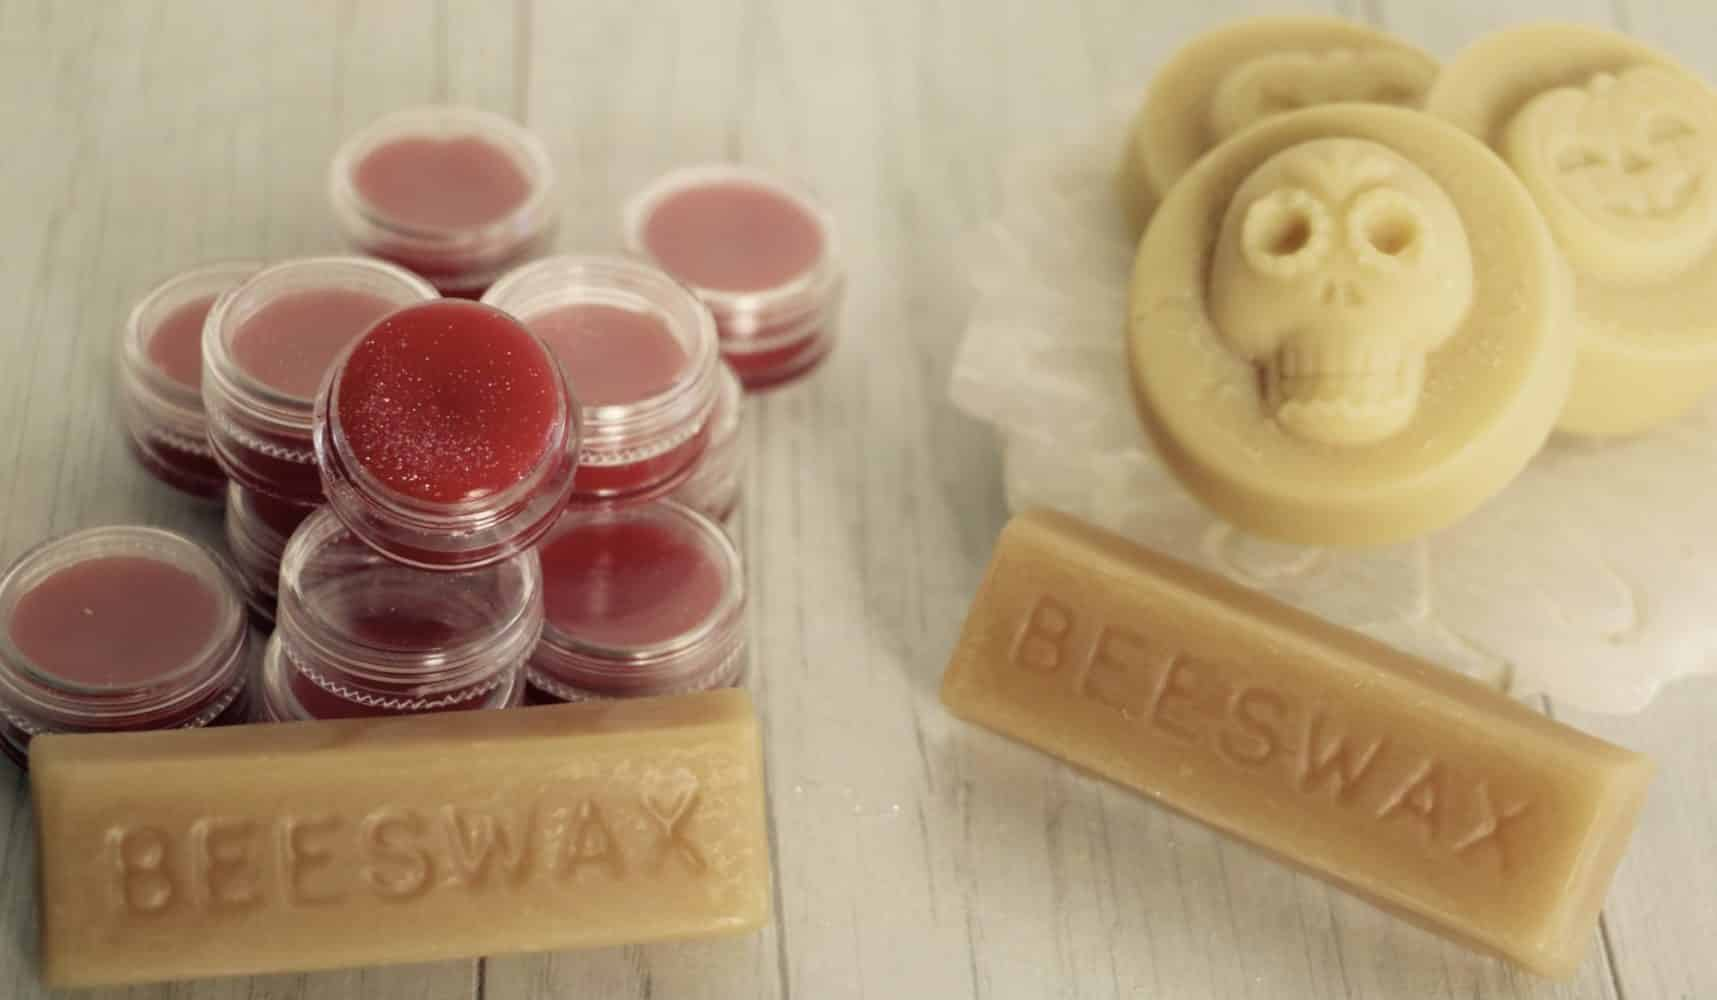 Got beeswax? Let's make lip balm and lotion bars!